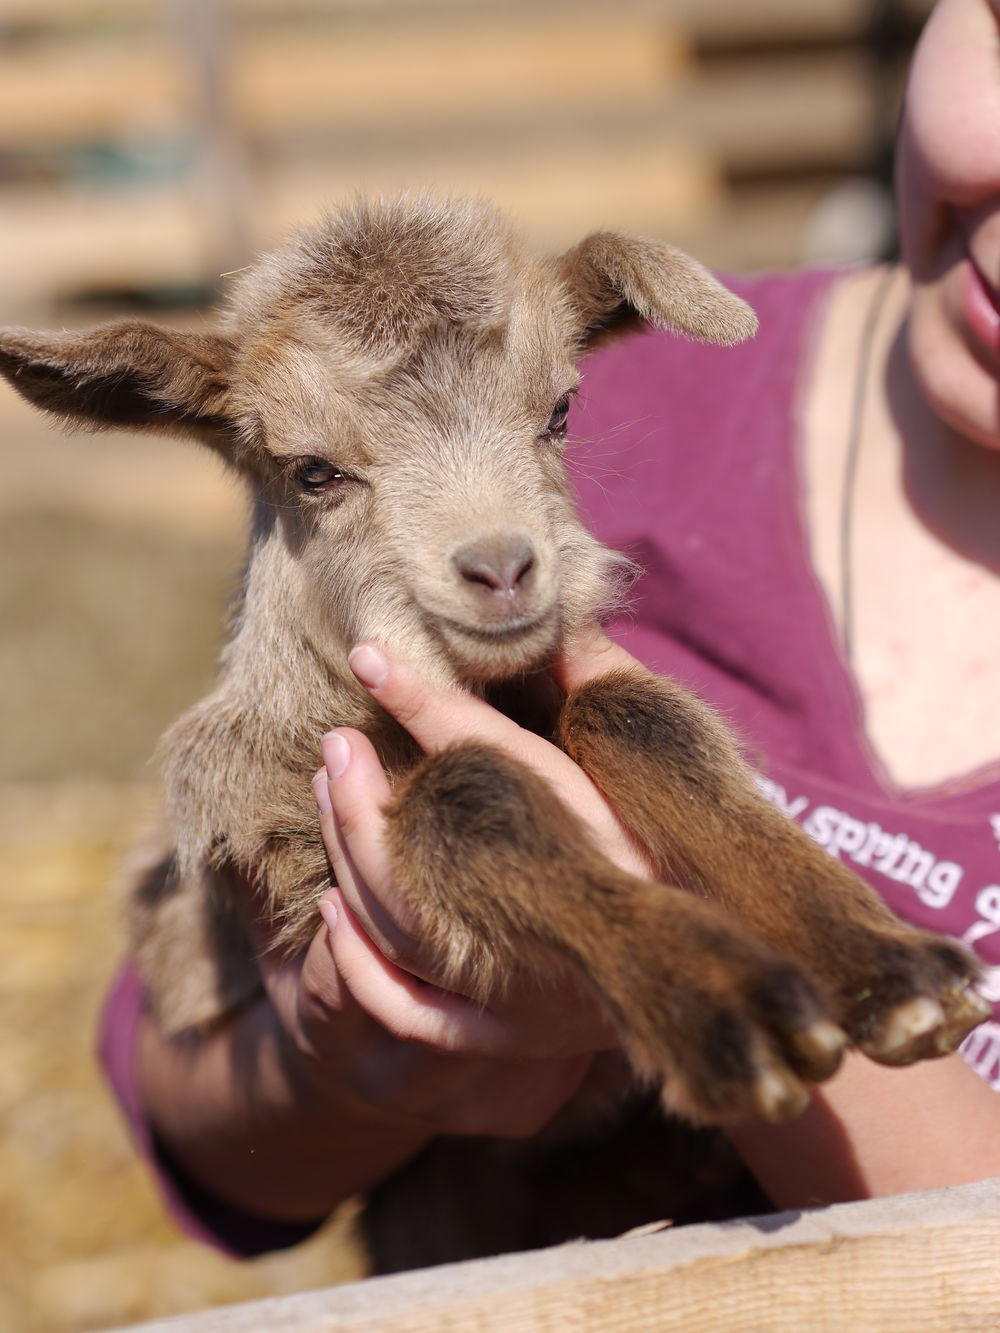 Domestic Animals Goatling Human Finger Human Hand Lifestyles Livestock Mammal One Animal One Person Real People Young Animal